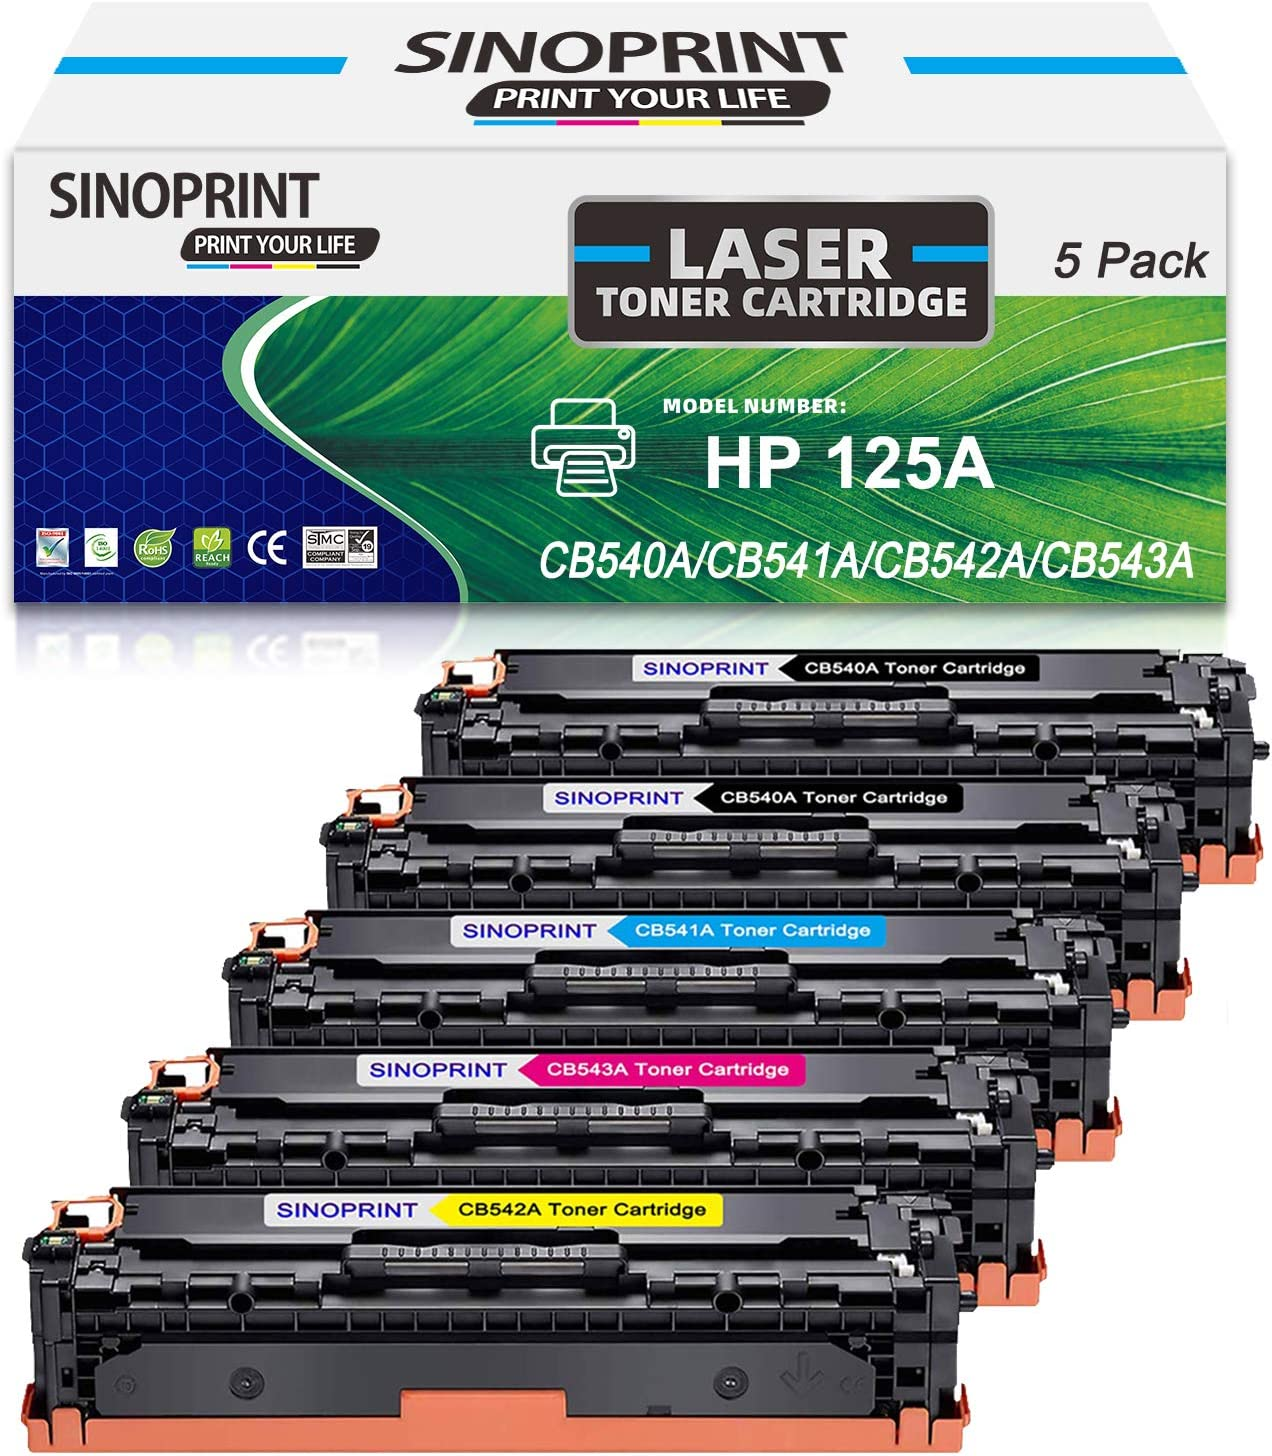 SINOPRINT 125A Compatible Toner Cartridge Replacement for HP 125A CB540A CB541A CB542A CB543A for HP Color Laserjet CP1215 CM1312nfi CP1518ni CP1515n CM1312 CP1513n CP1516n Printer (5-Pack)